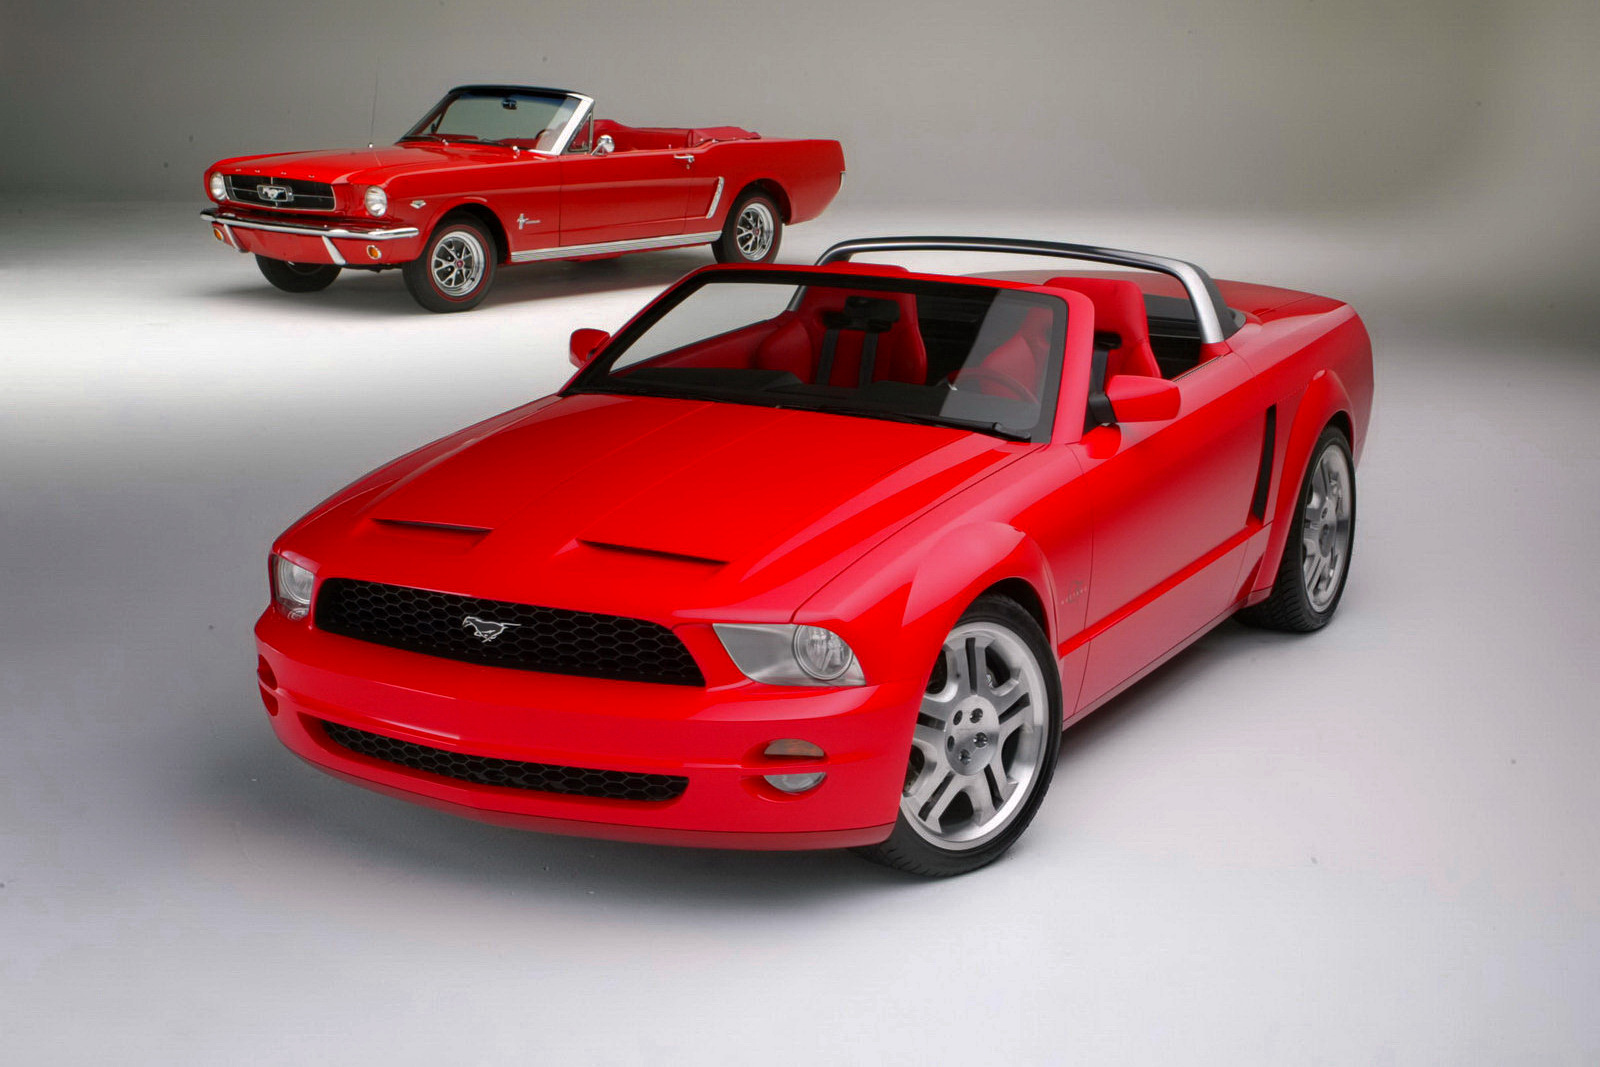 2004 Mustang Convertible Concept for sale | AmcarGuide.com ...